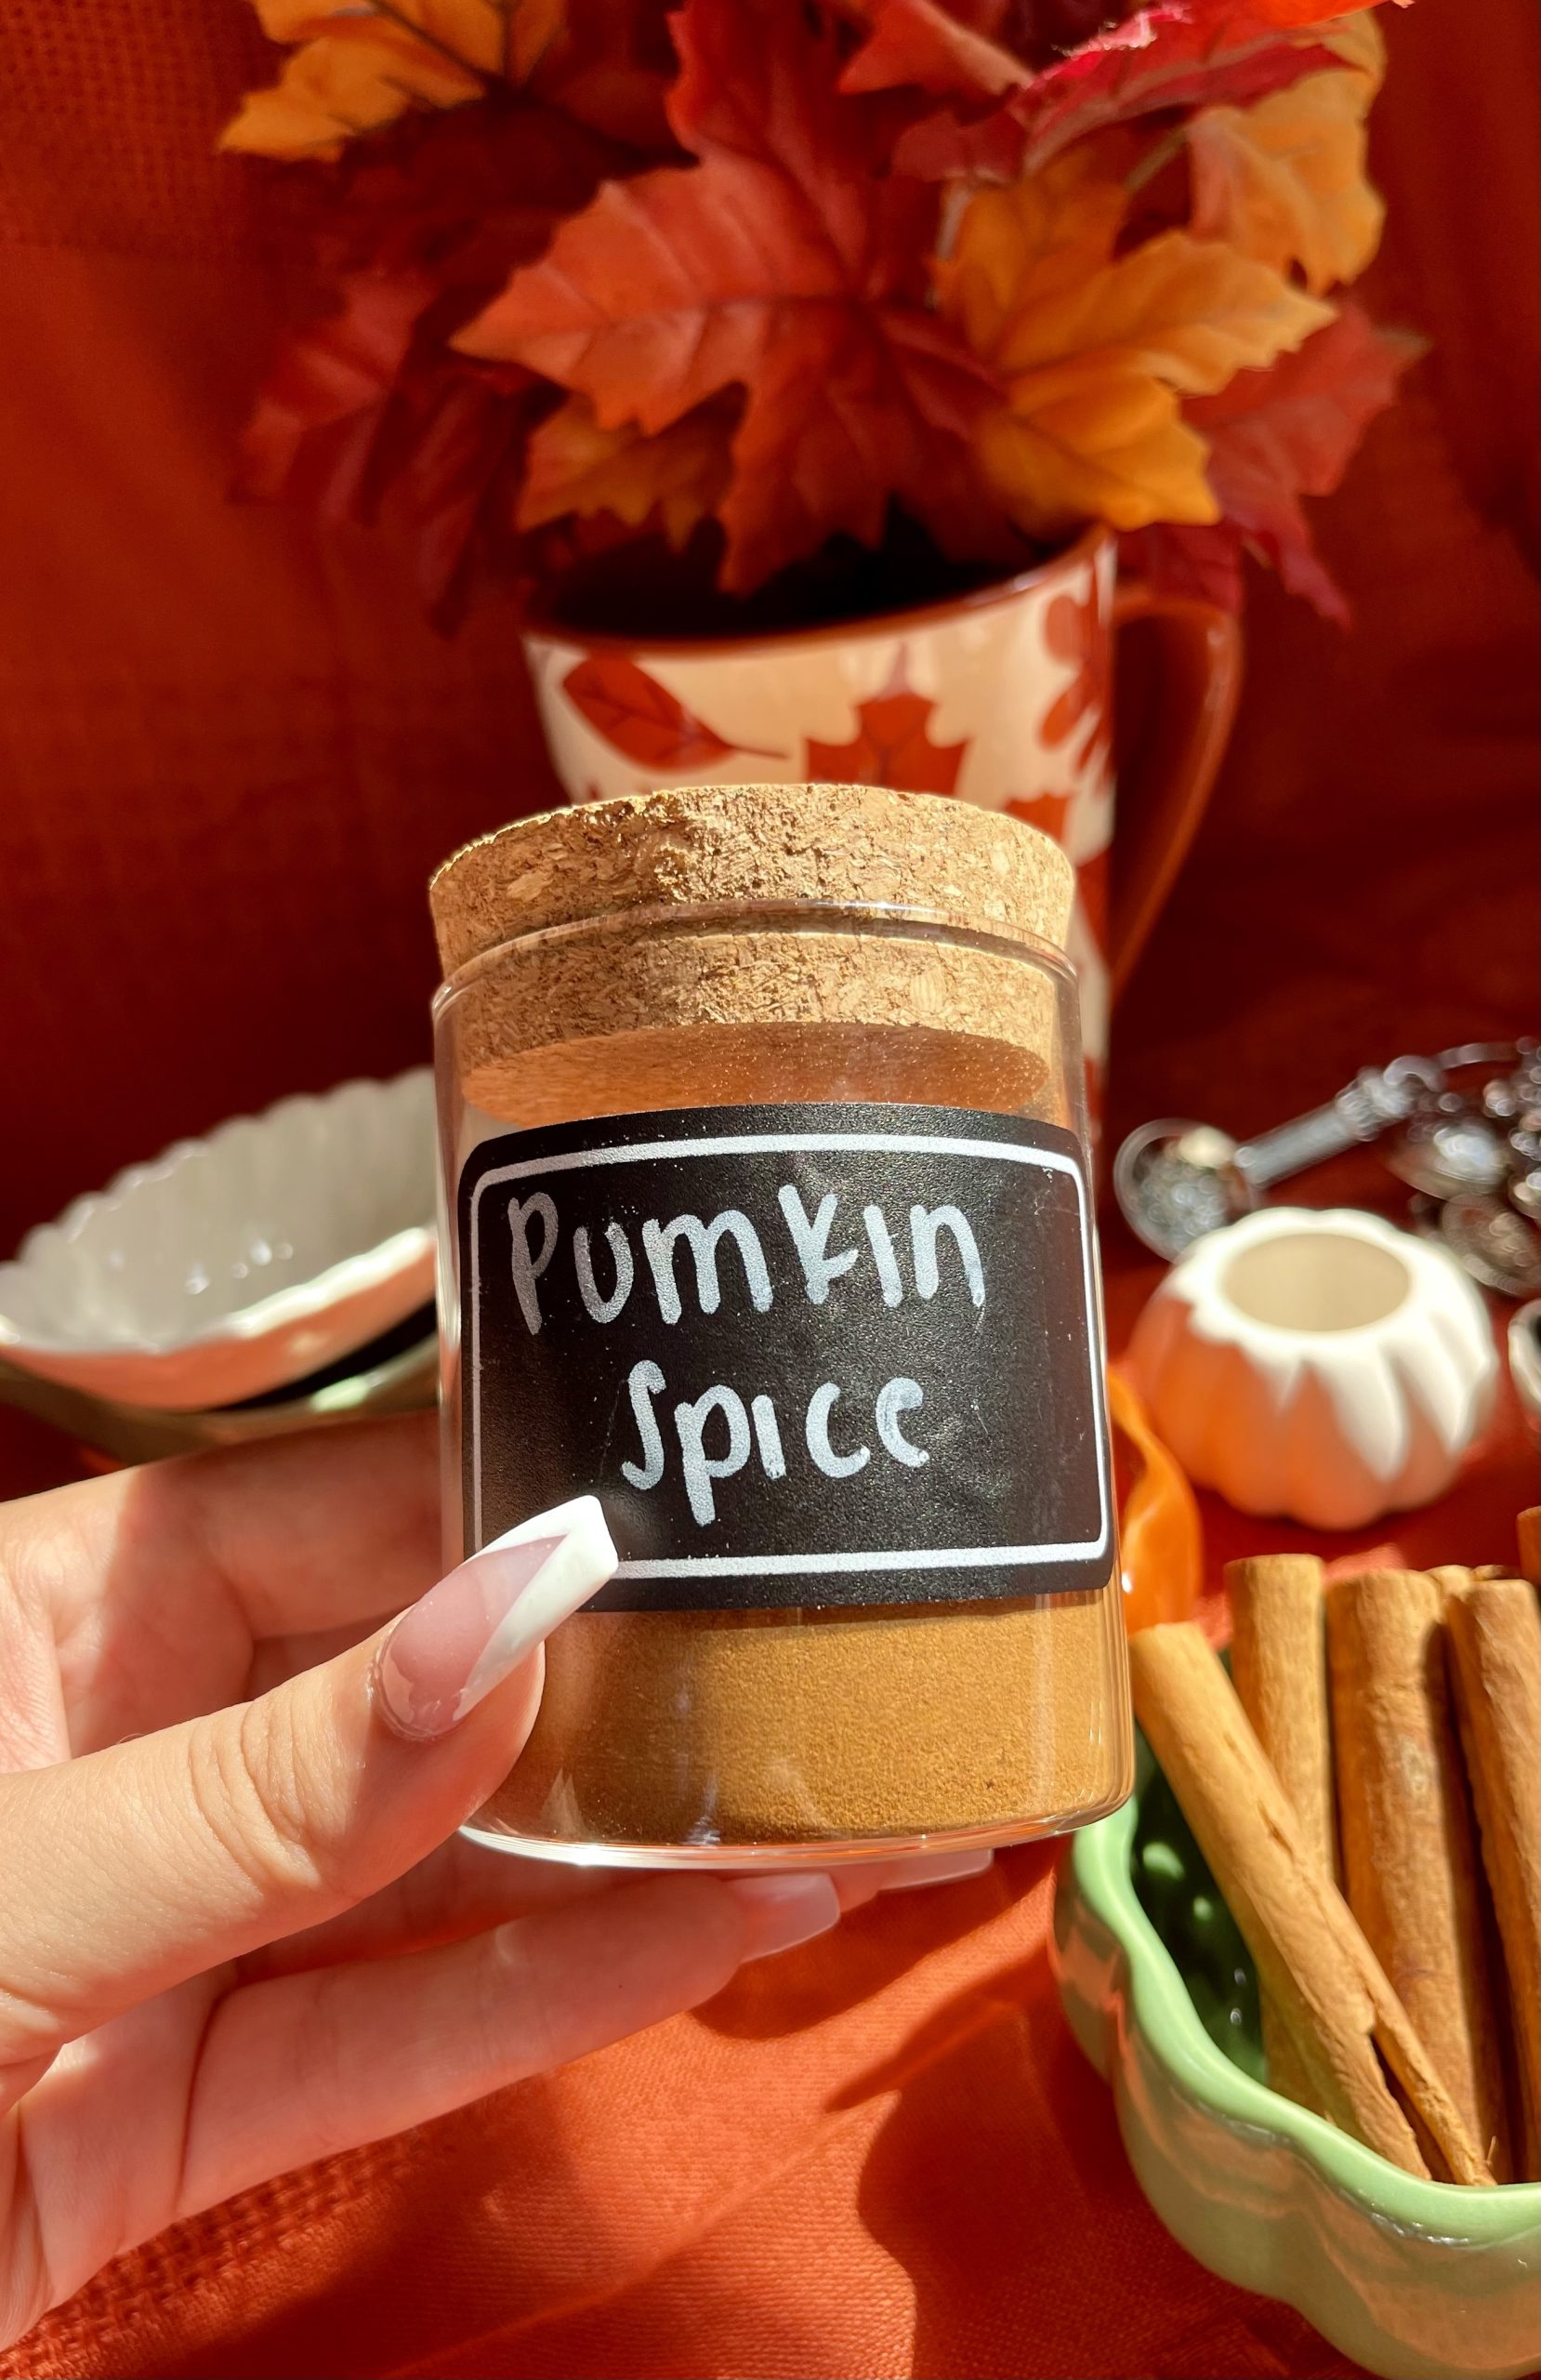 What's the best part of fall? Pumpkin! And what's better than a homemade Pumpkin Spice that can go in literally any recipe, from coffee to pie to cookies! via @chocolatemore